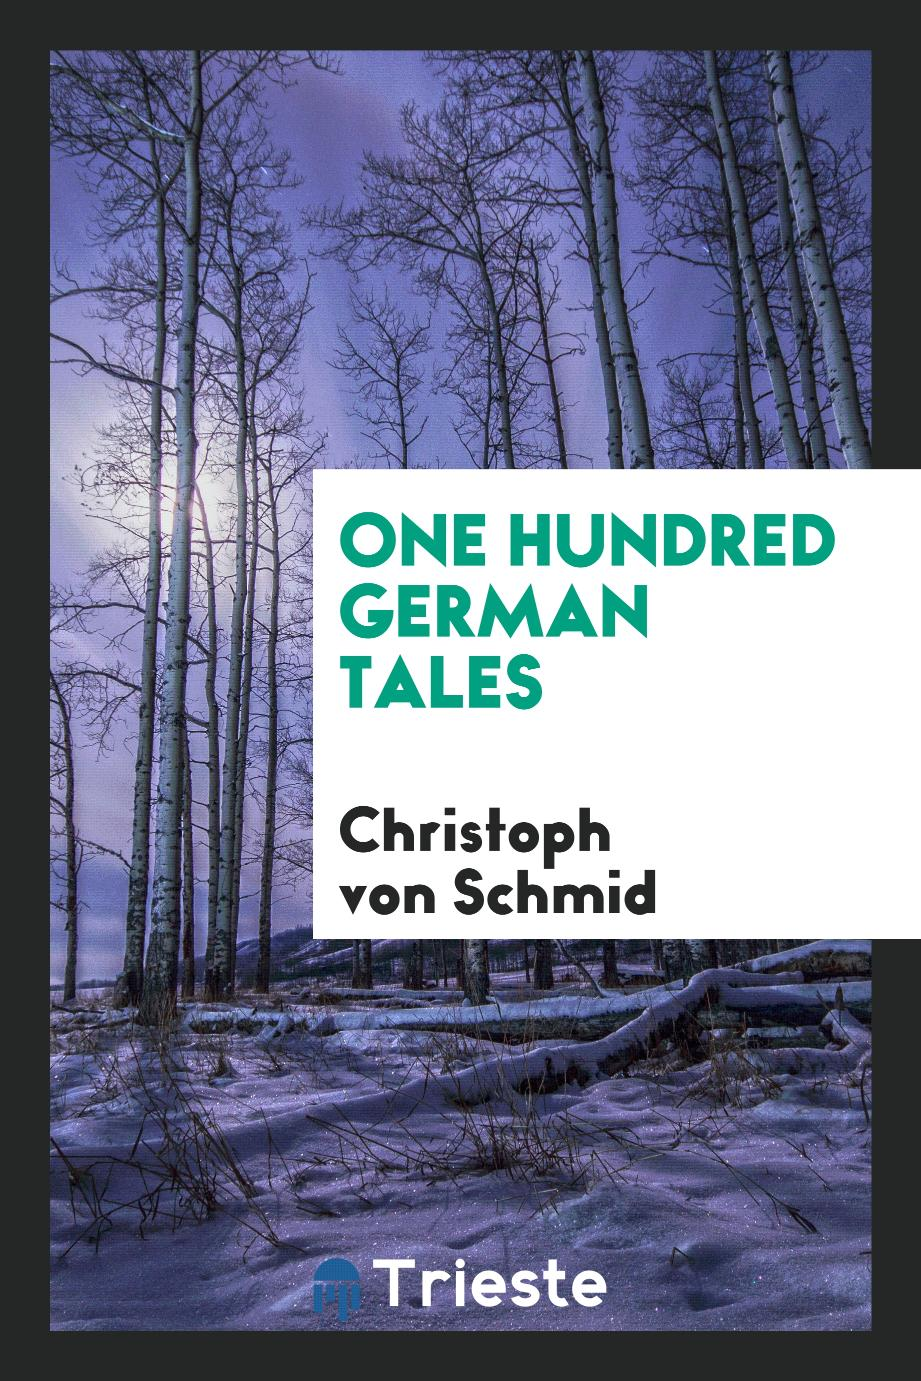 One hundred German tales